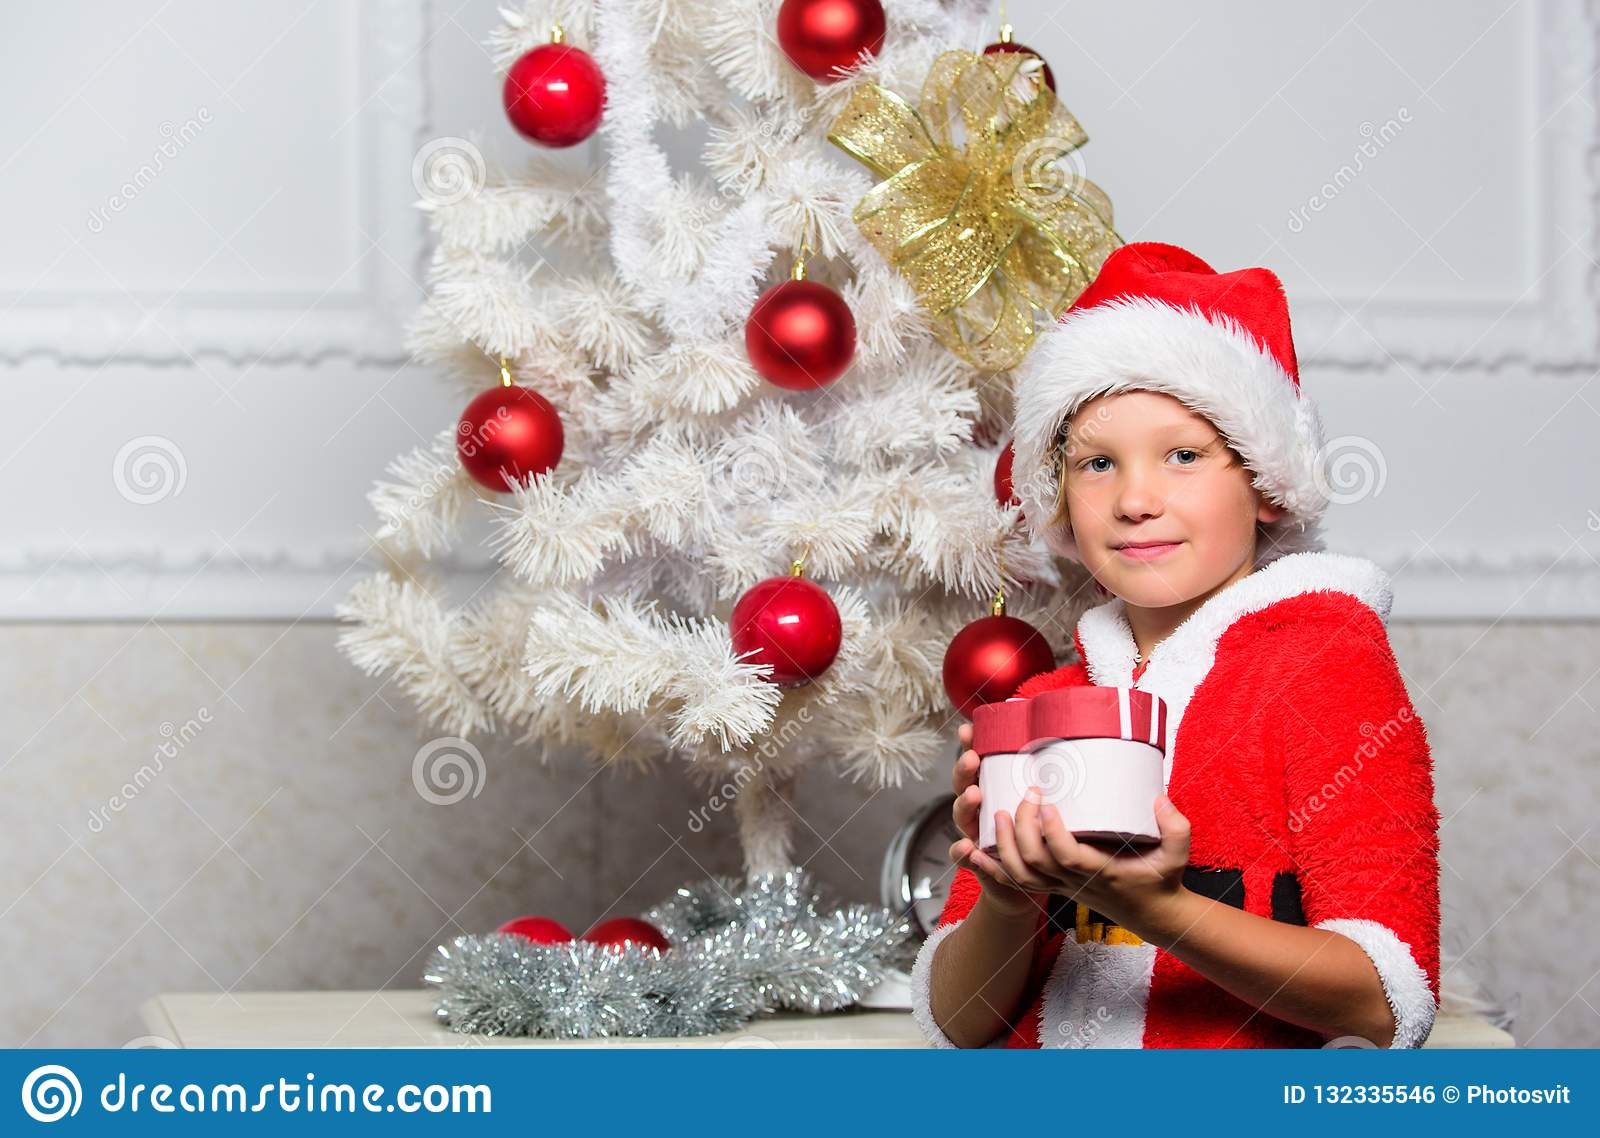 Christmas Gift Ideas For Kids Boys.Christmas Tree Ideas For Kids Boy Kid Dressed As Santa With